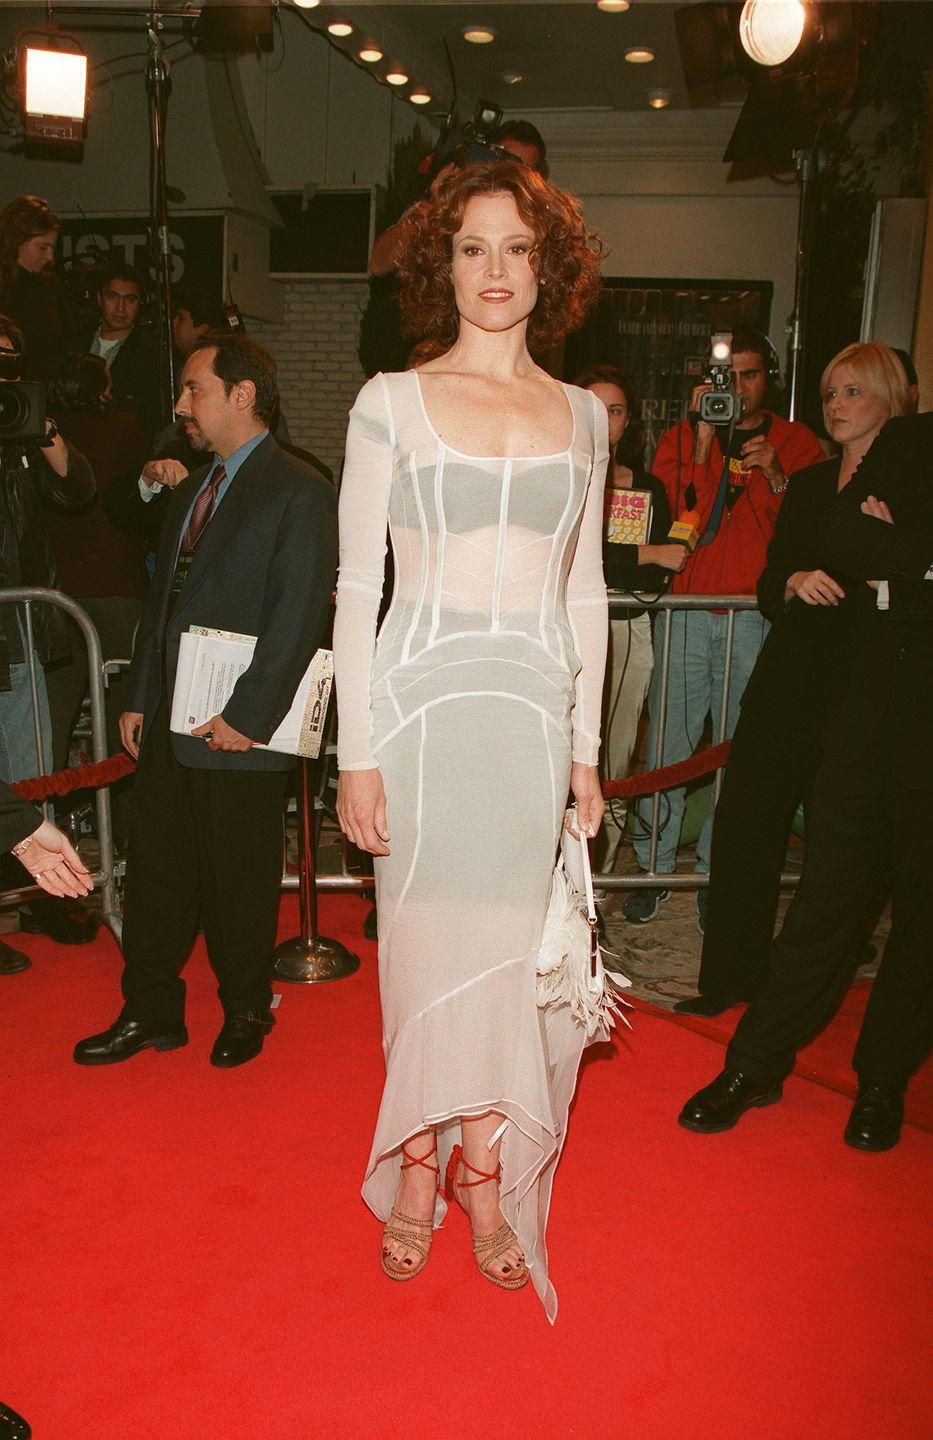 <p>At the premiere of <em>Alien: Resurrection, </em>Sigourney donned this completely sheer white gown and wore black undergarments for ~sexy~ contrast. Also, her bag is made of white feathers, so there's that.</p>